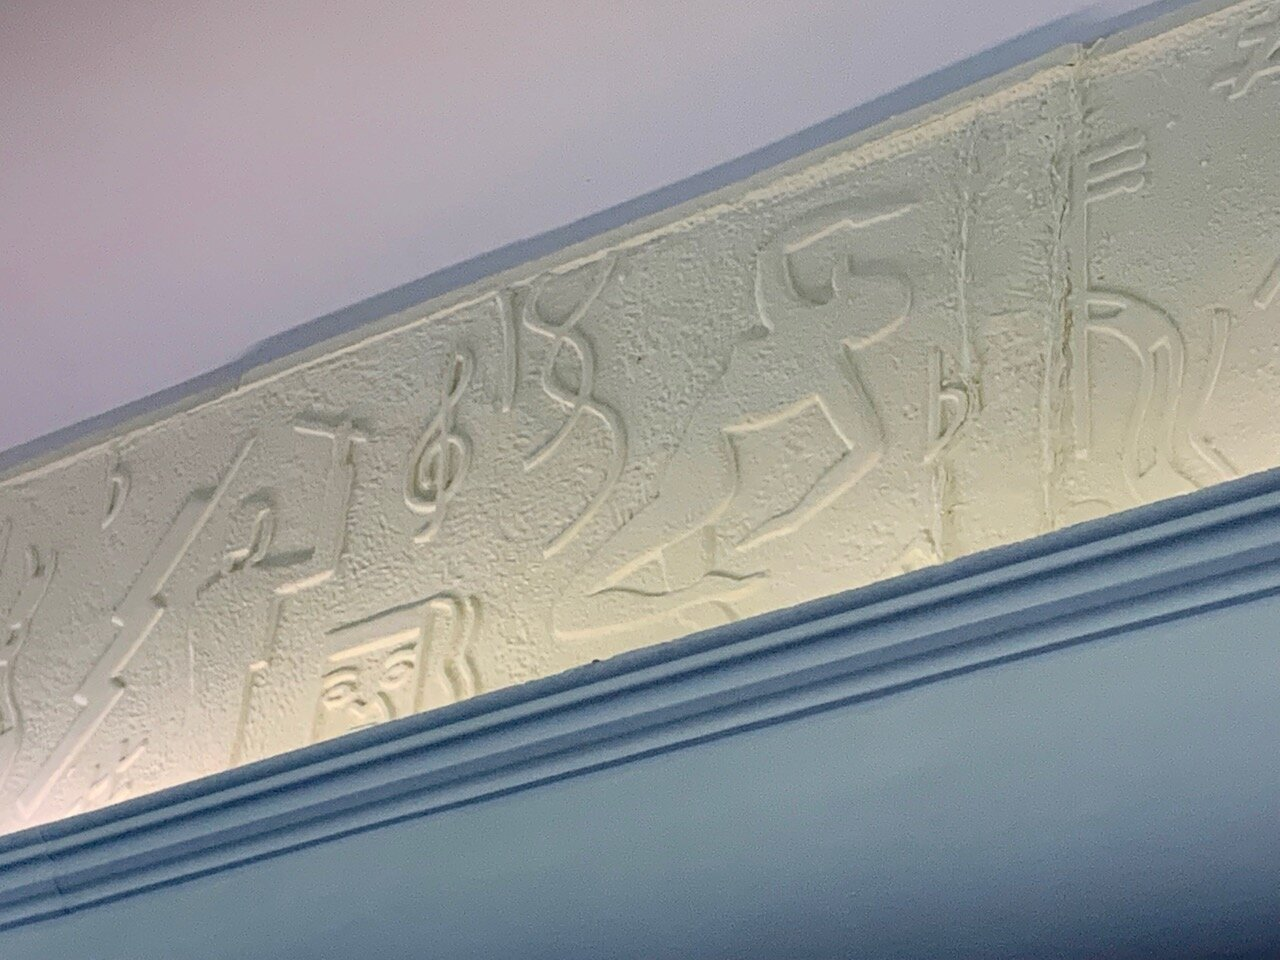 Some jazzy Deco bas relief figures lining the space below the ceiling of the ballroom